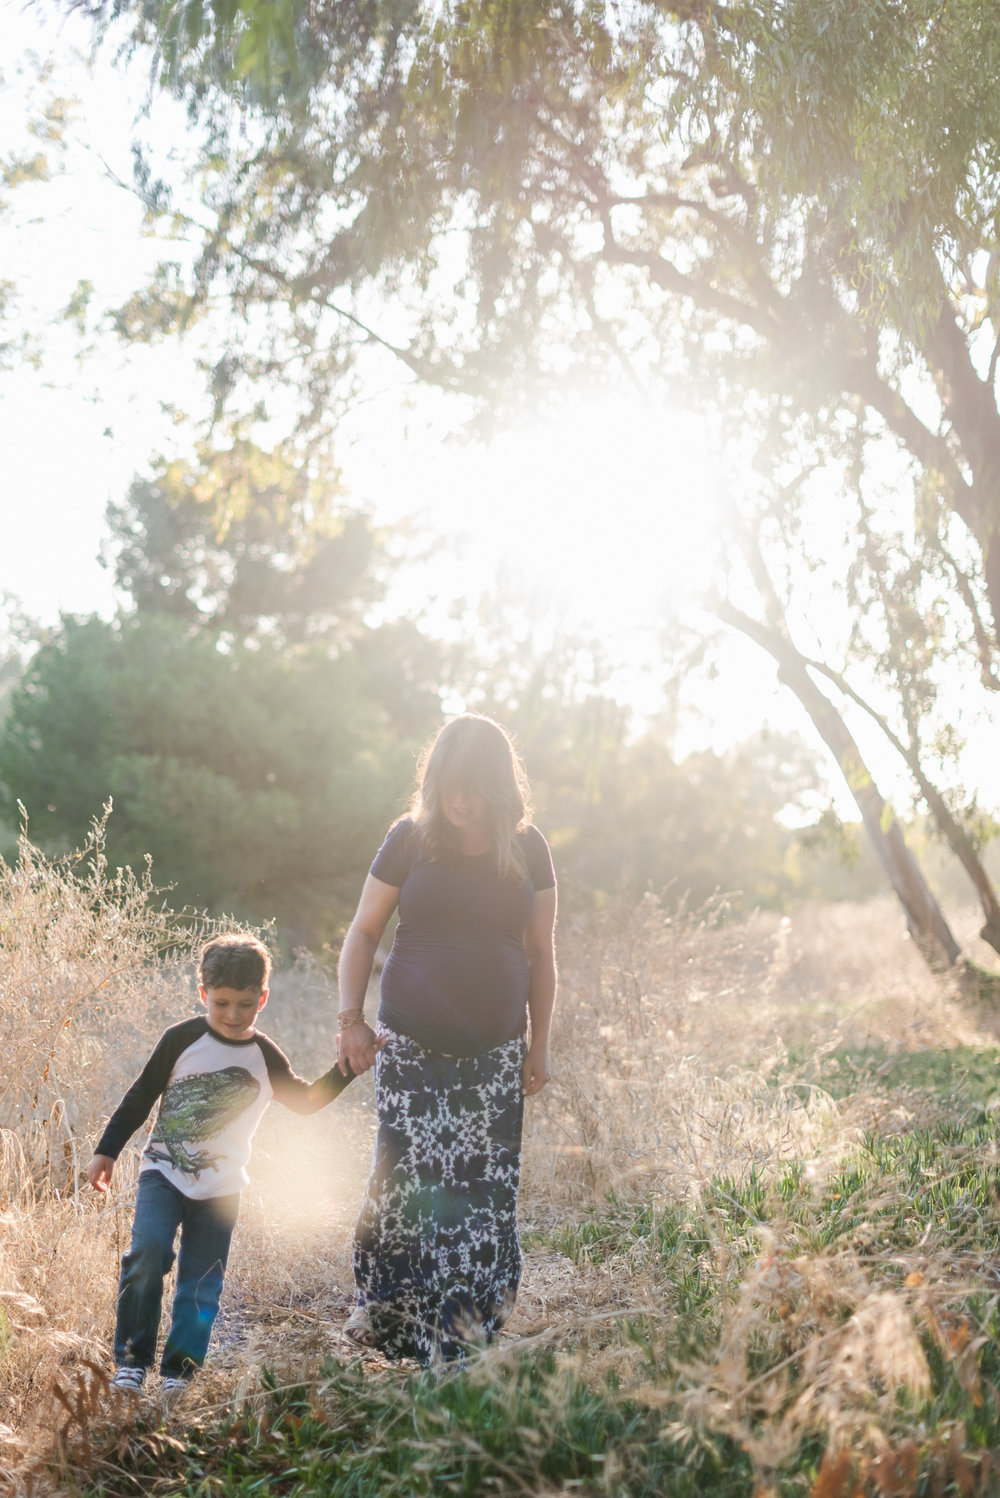 Family Photos in Los Angeles County in a field